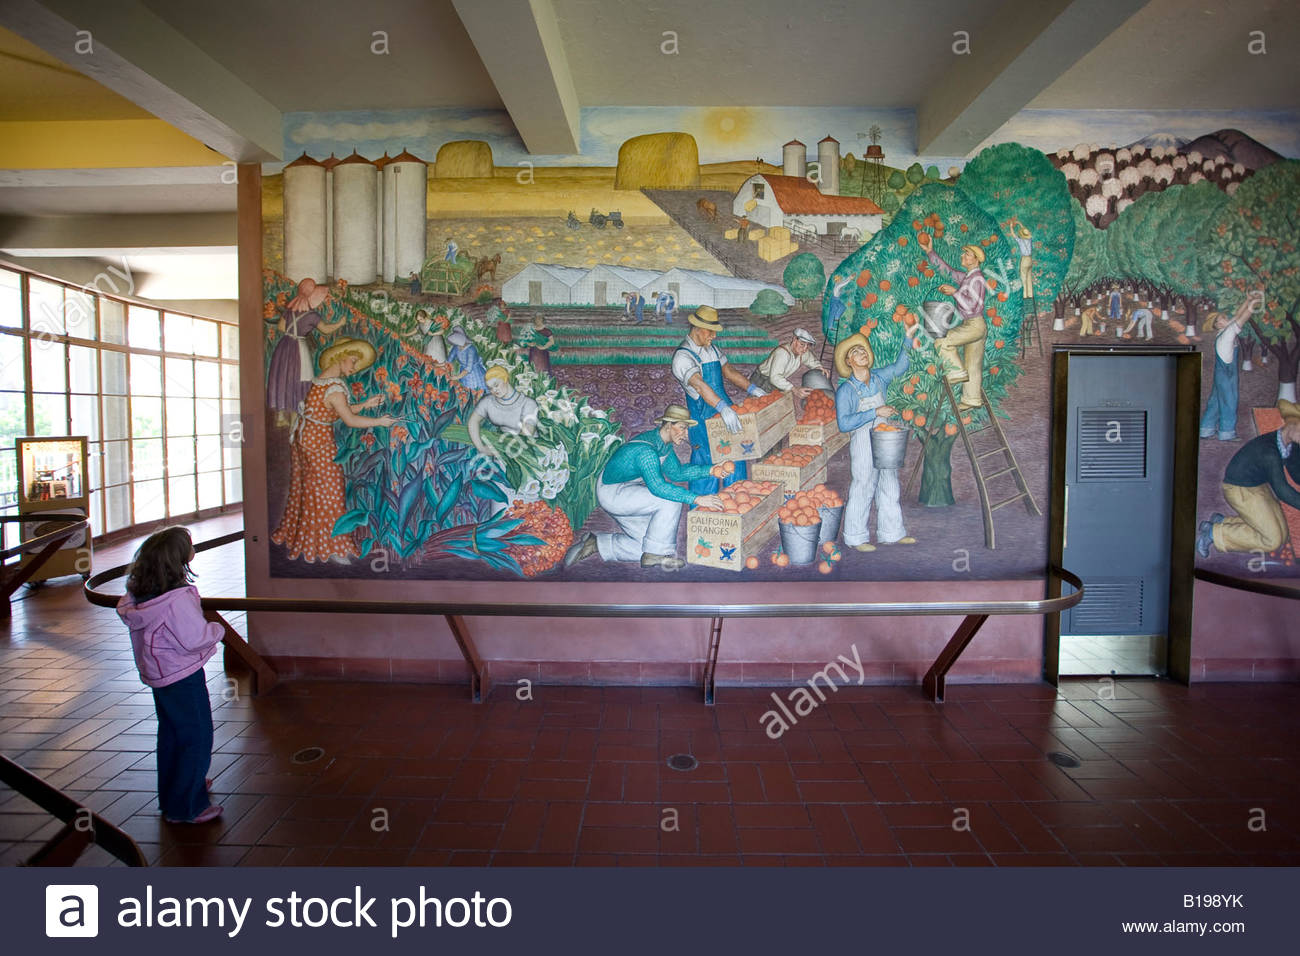 Wpa mural in the lobby of coit tower in san francisco for Coit tower mural artists